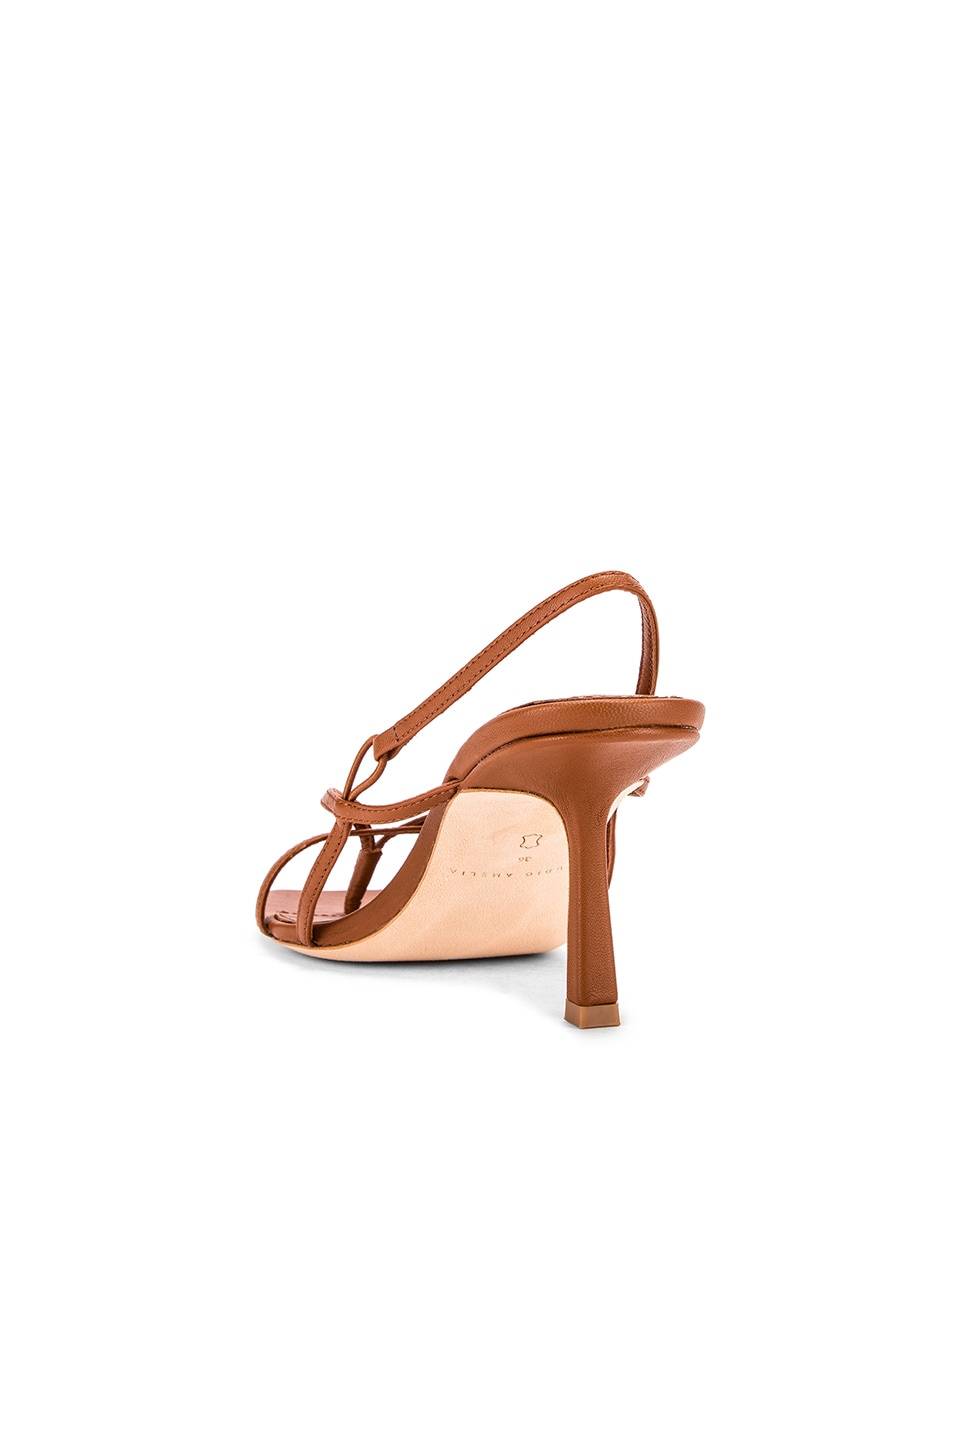 Image 3 of Studio Amelia 2.4 Flip Flop Heel in Tan Nappa Leather